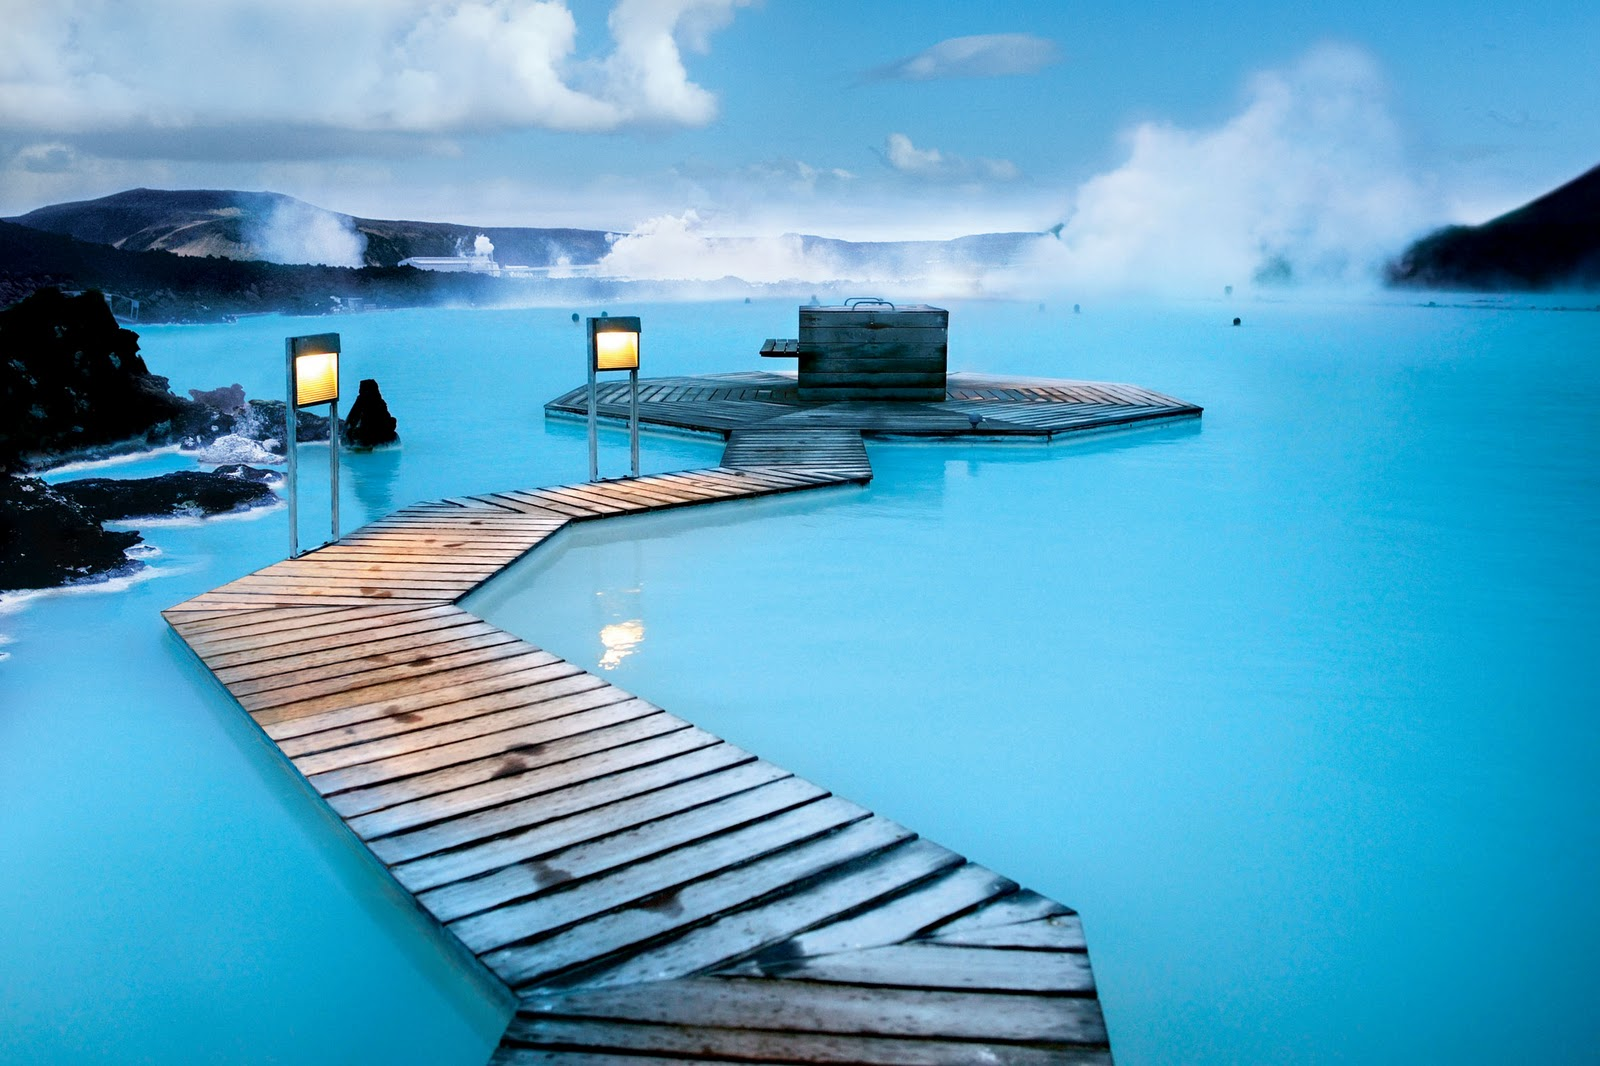 Image from Guide to Iceland